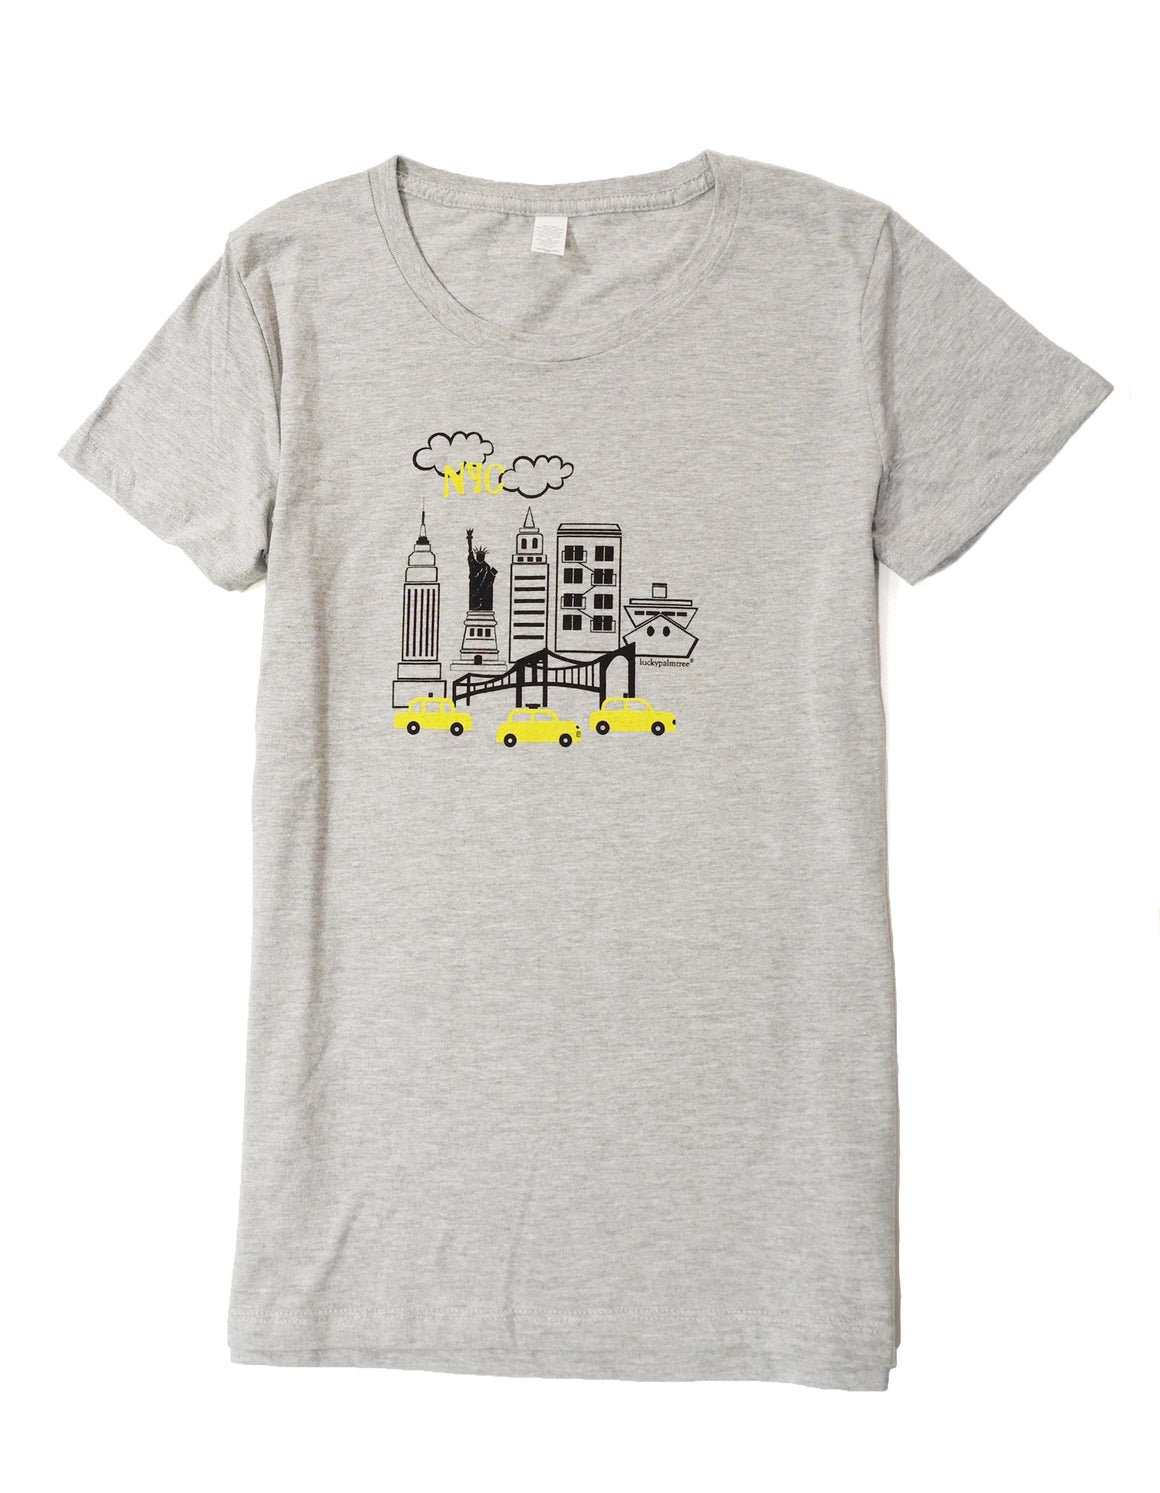 NYC cotton women's short sleeve tee